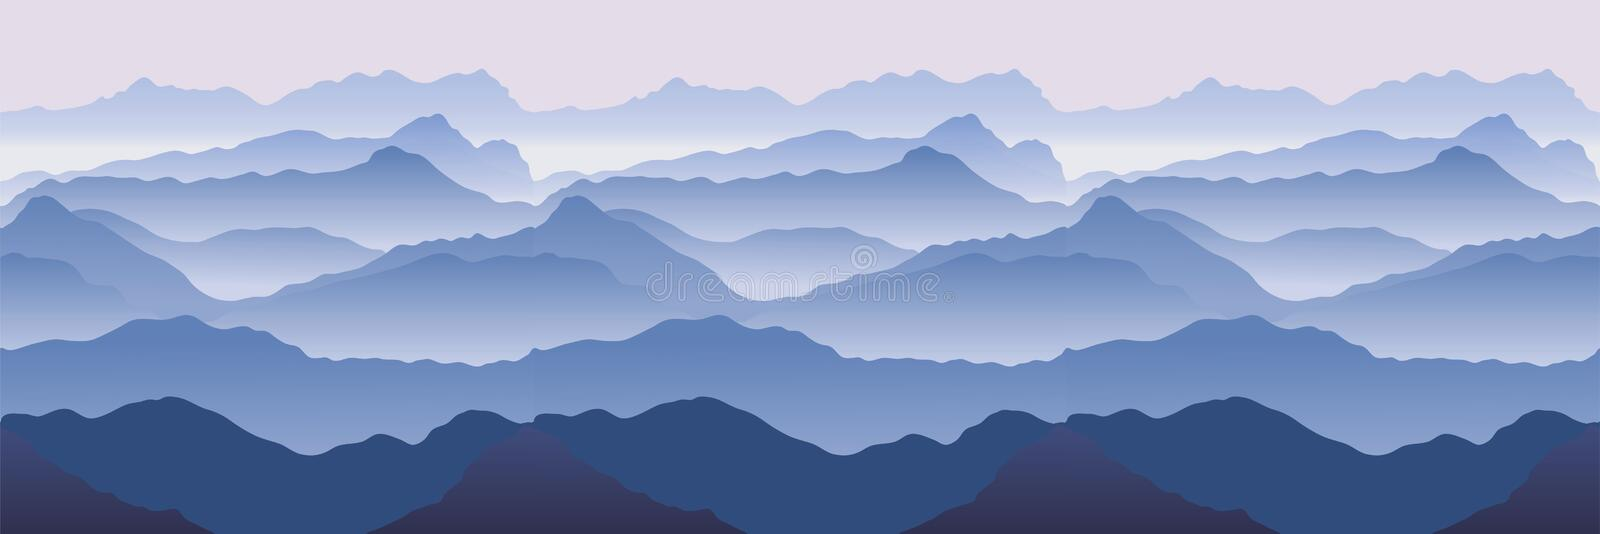 Mountains royalty free illustration